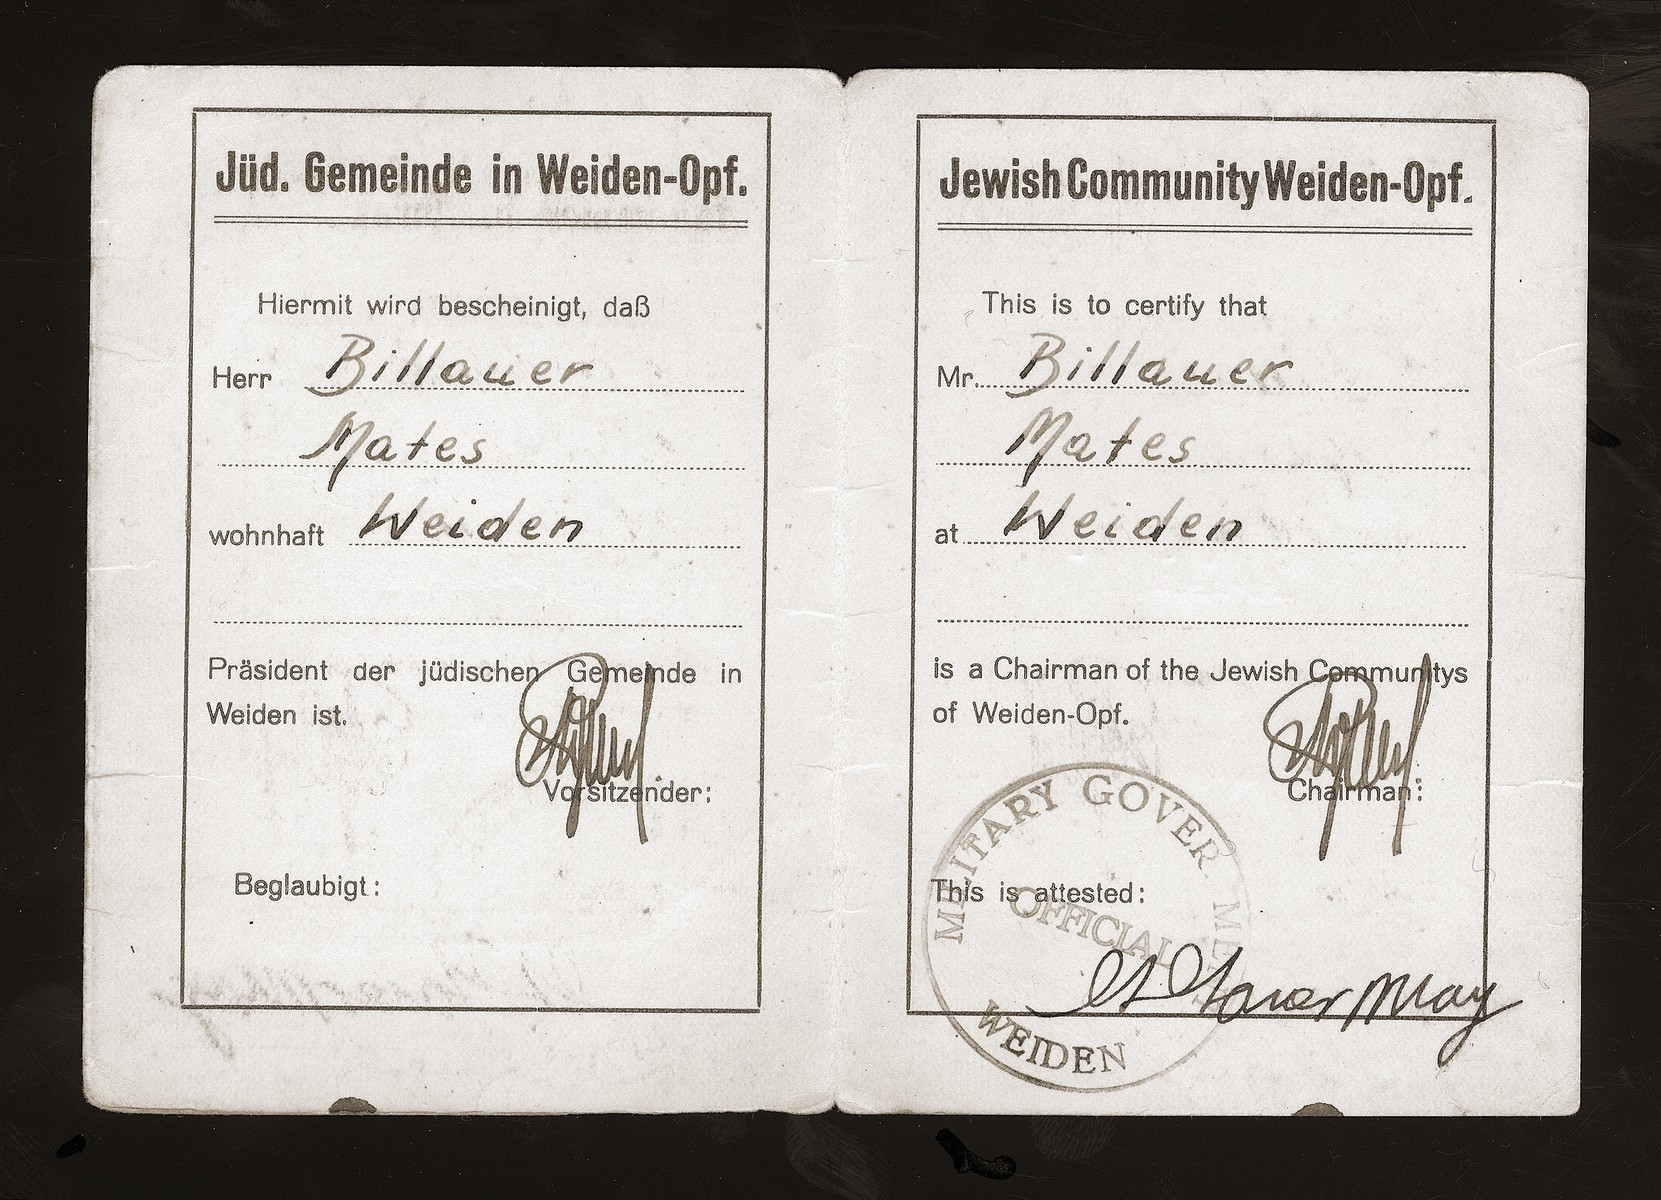 An identification card of Mates Billauer issued by the Military Government in Weiden.